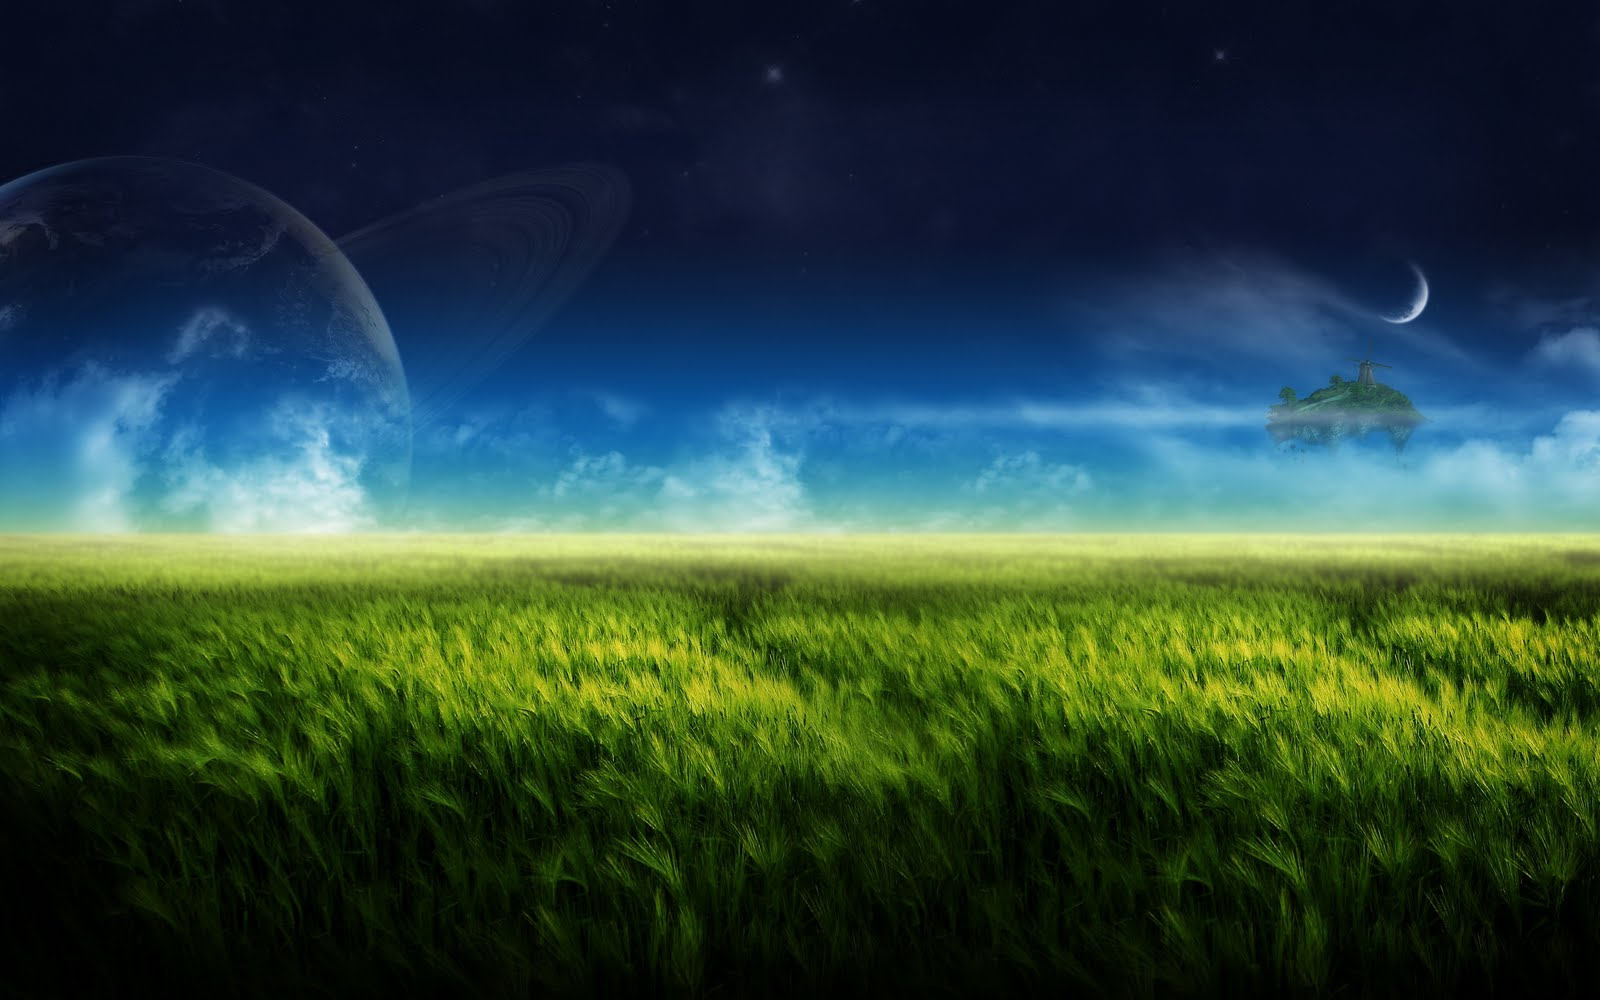 My Dream World HQ Wallpaper 1920x1200 - a dreamy world for windows 7